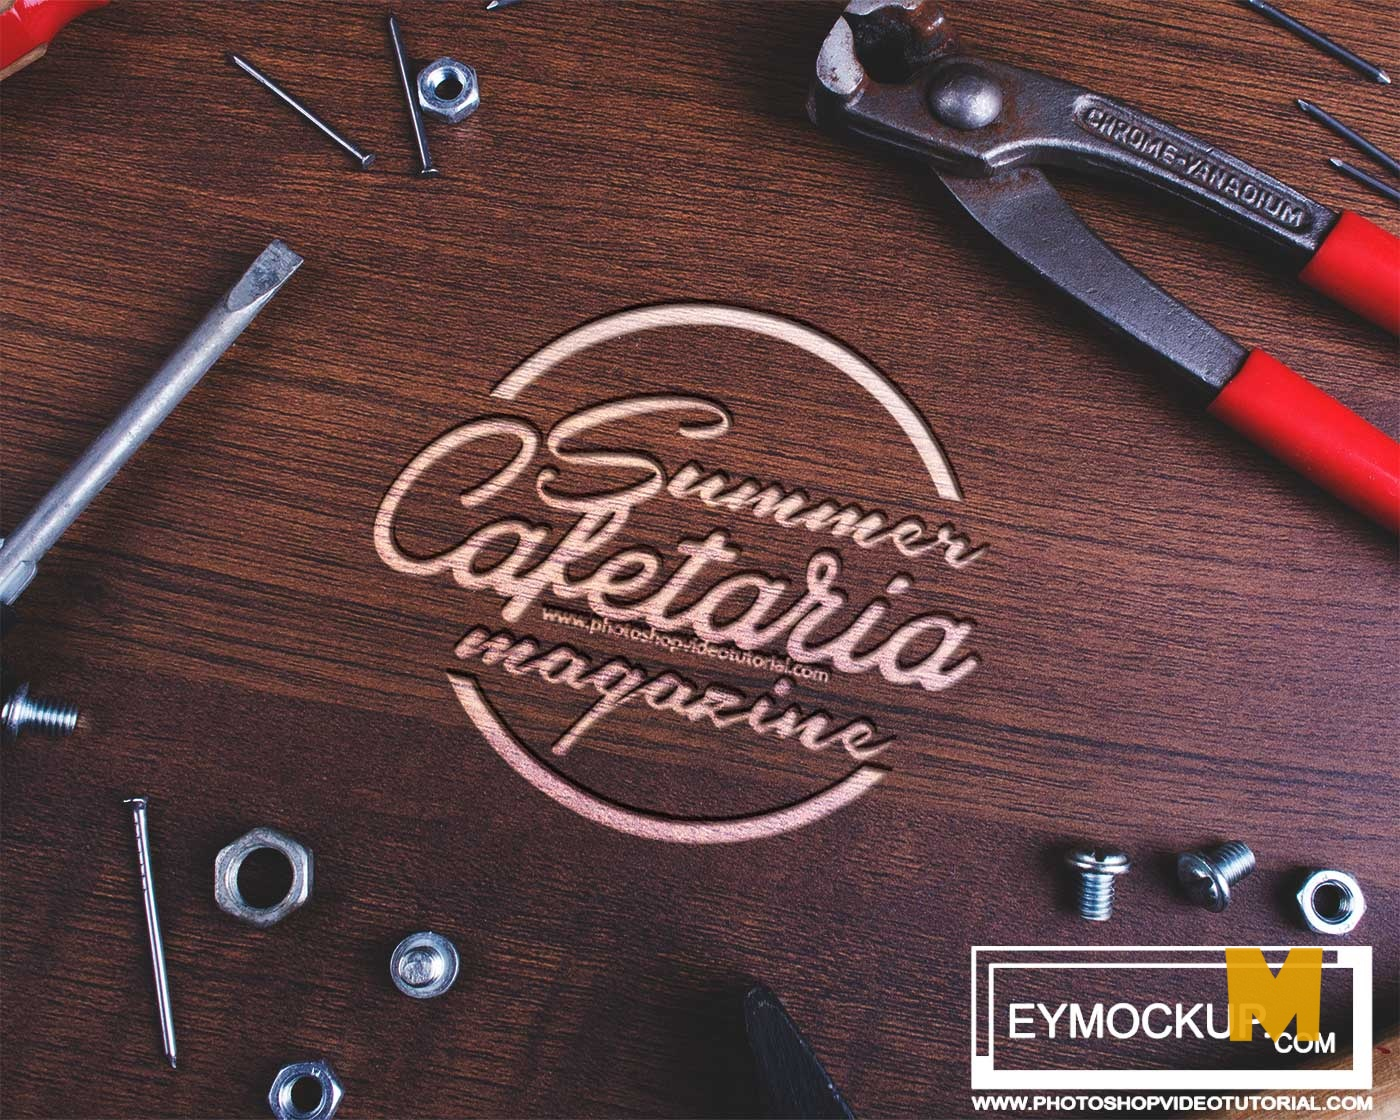 Engrave Wood Tools Mockup